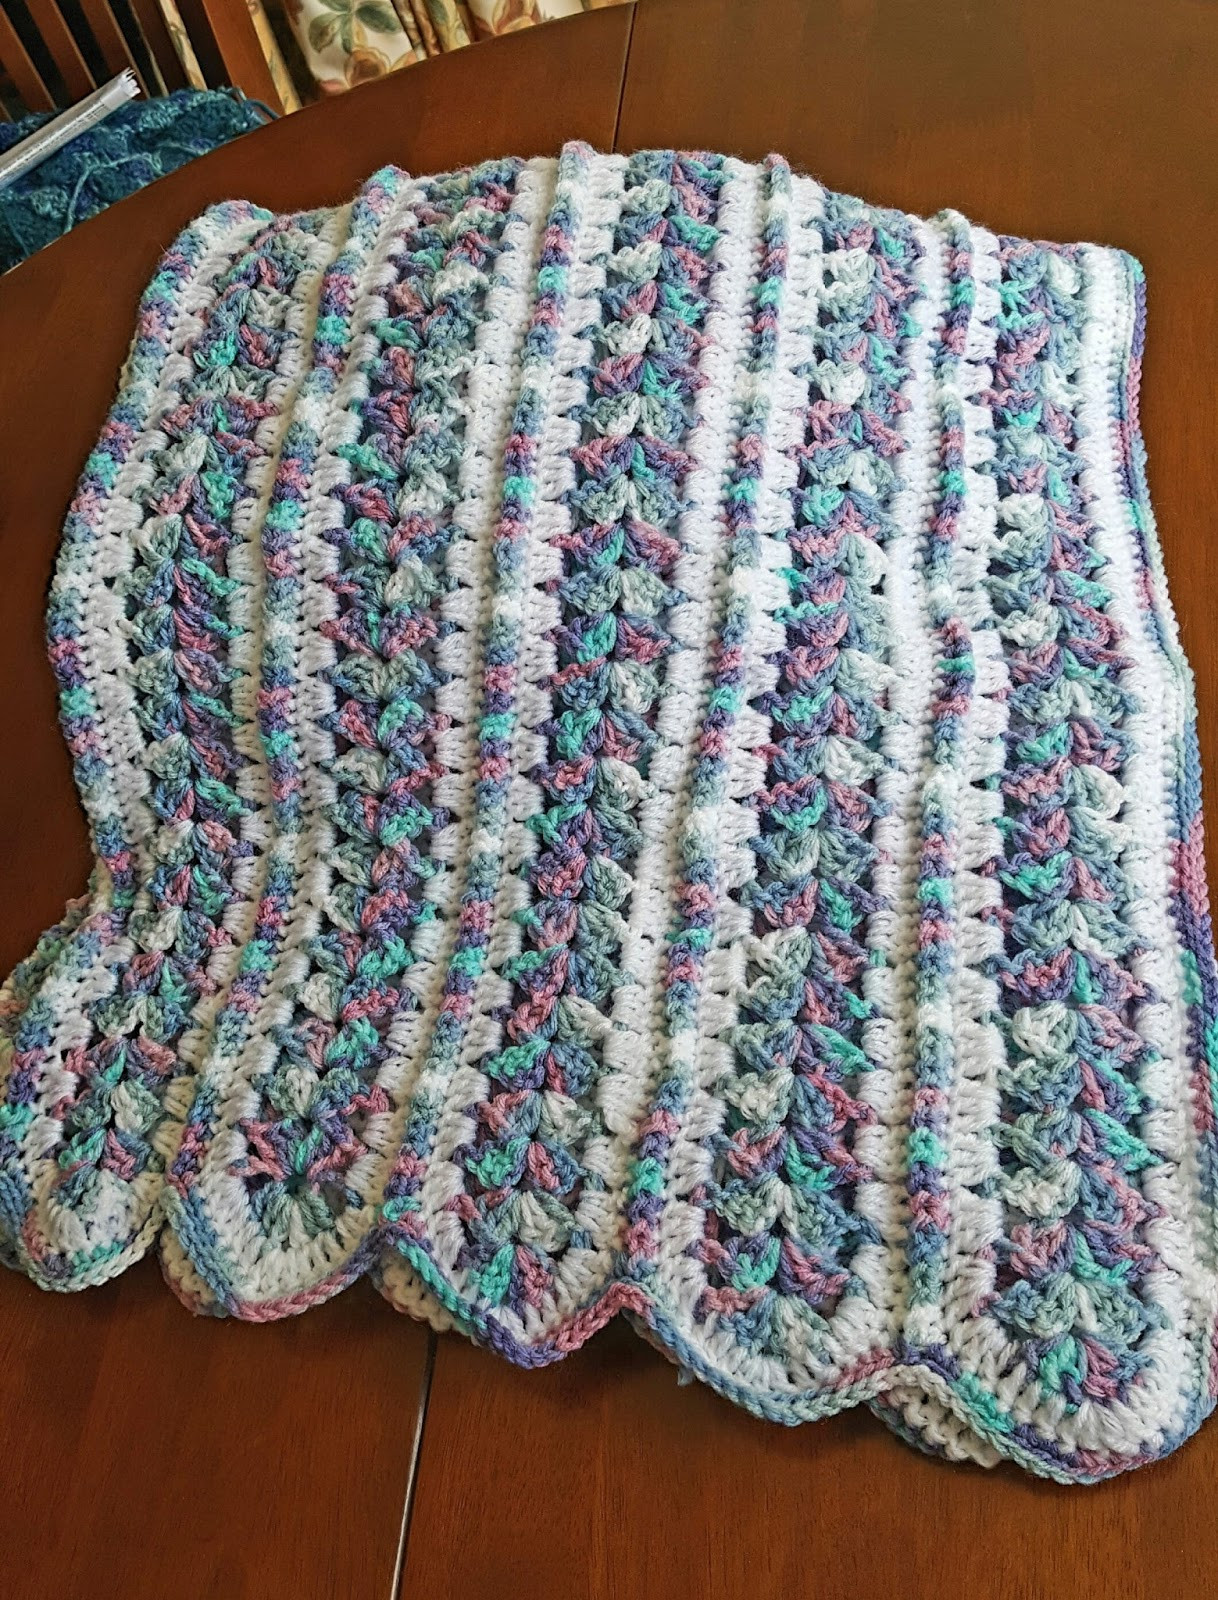 Best Of Mile A Minute Blanket [free Crochet Pattern] Mile A Minute Crochet Of Beautiful 37 Photos Mile A Minute Crochet